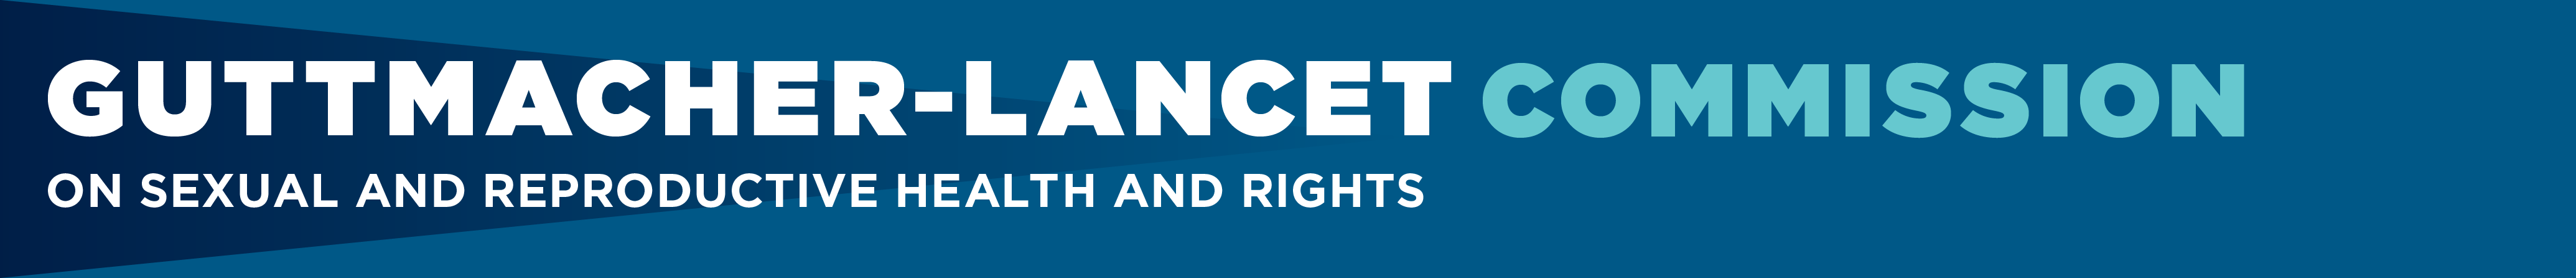 Lancet Commission | Guttmacher Institute